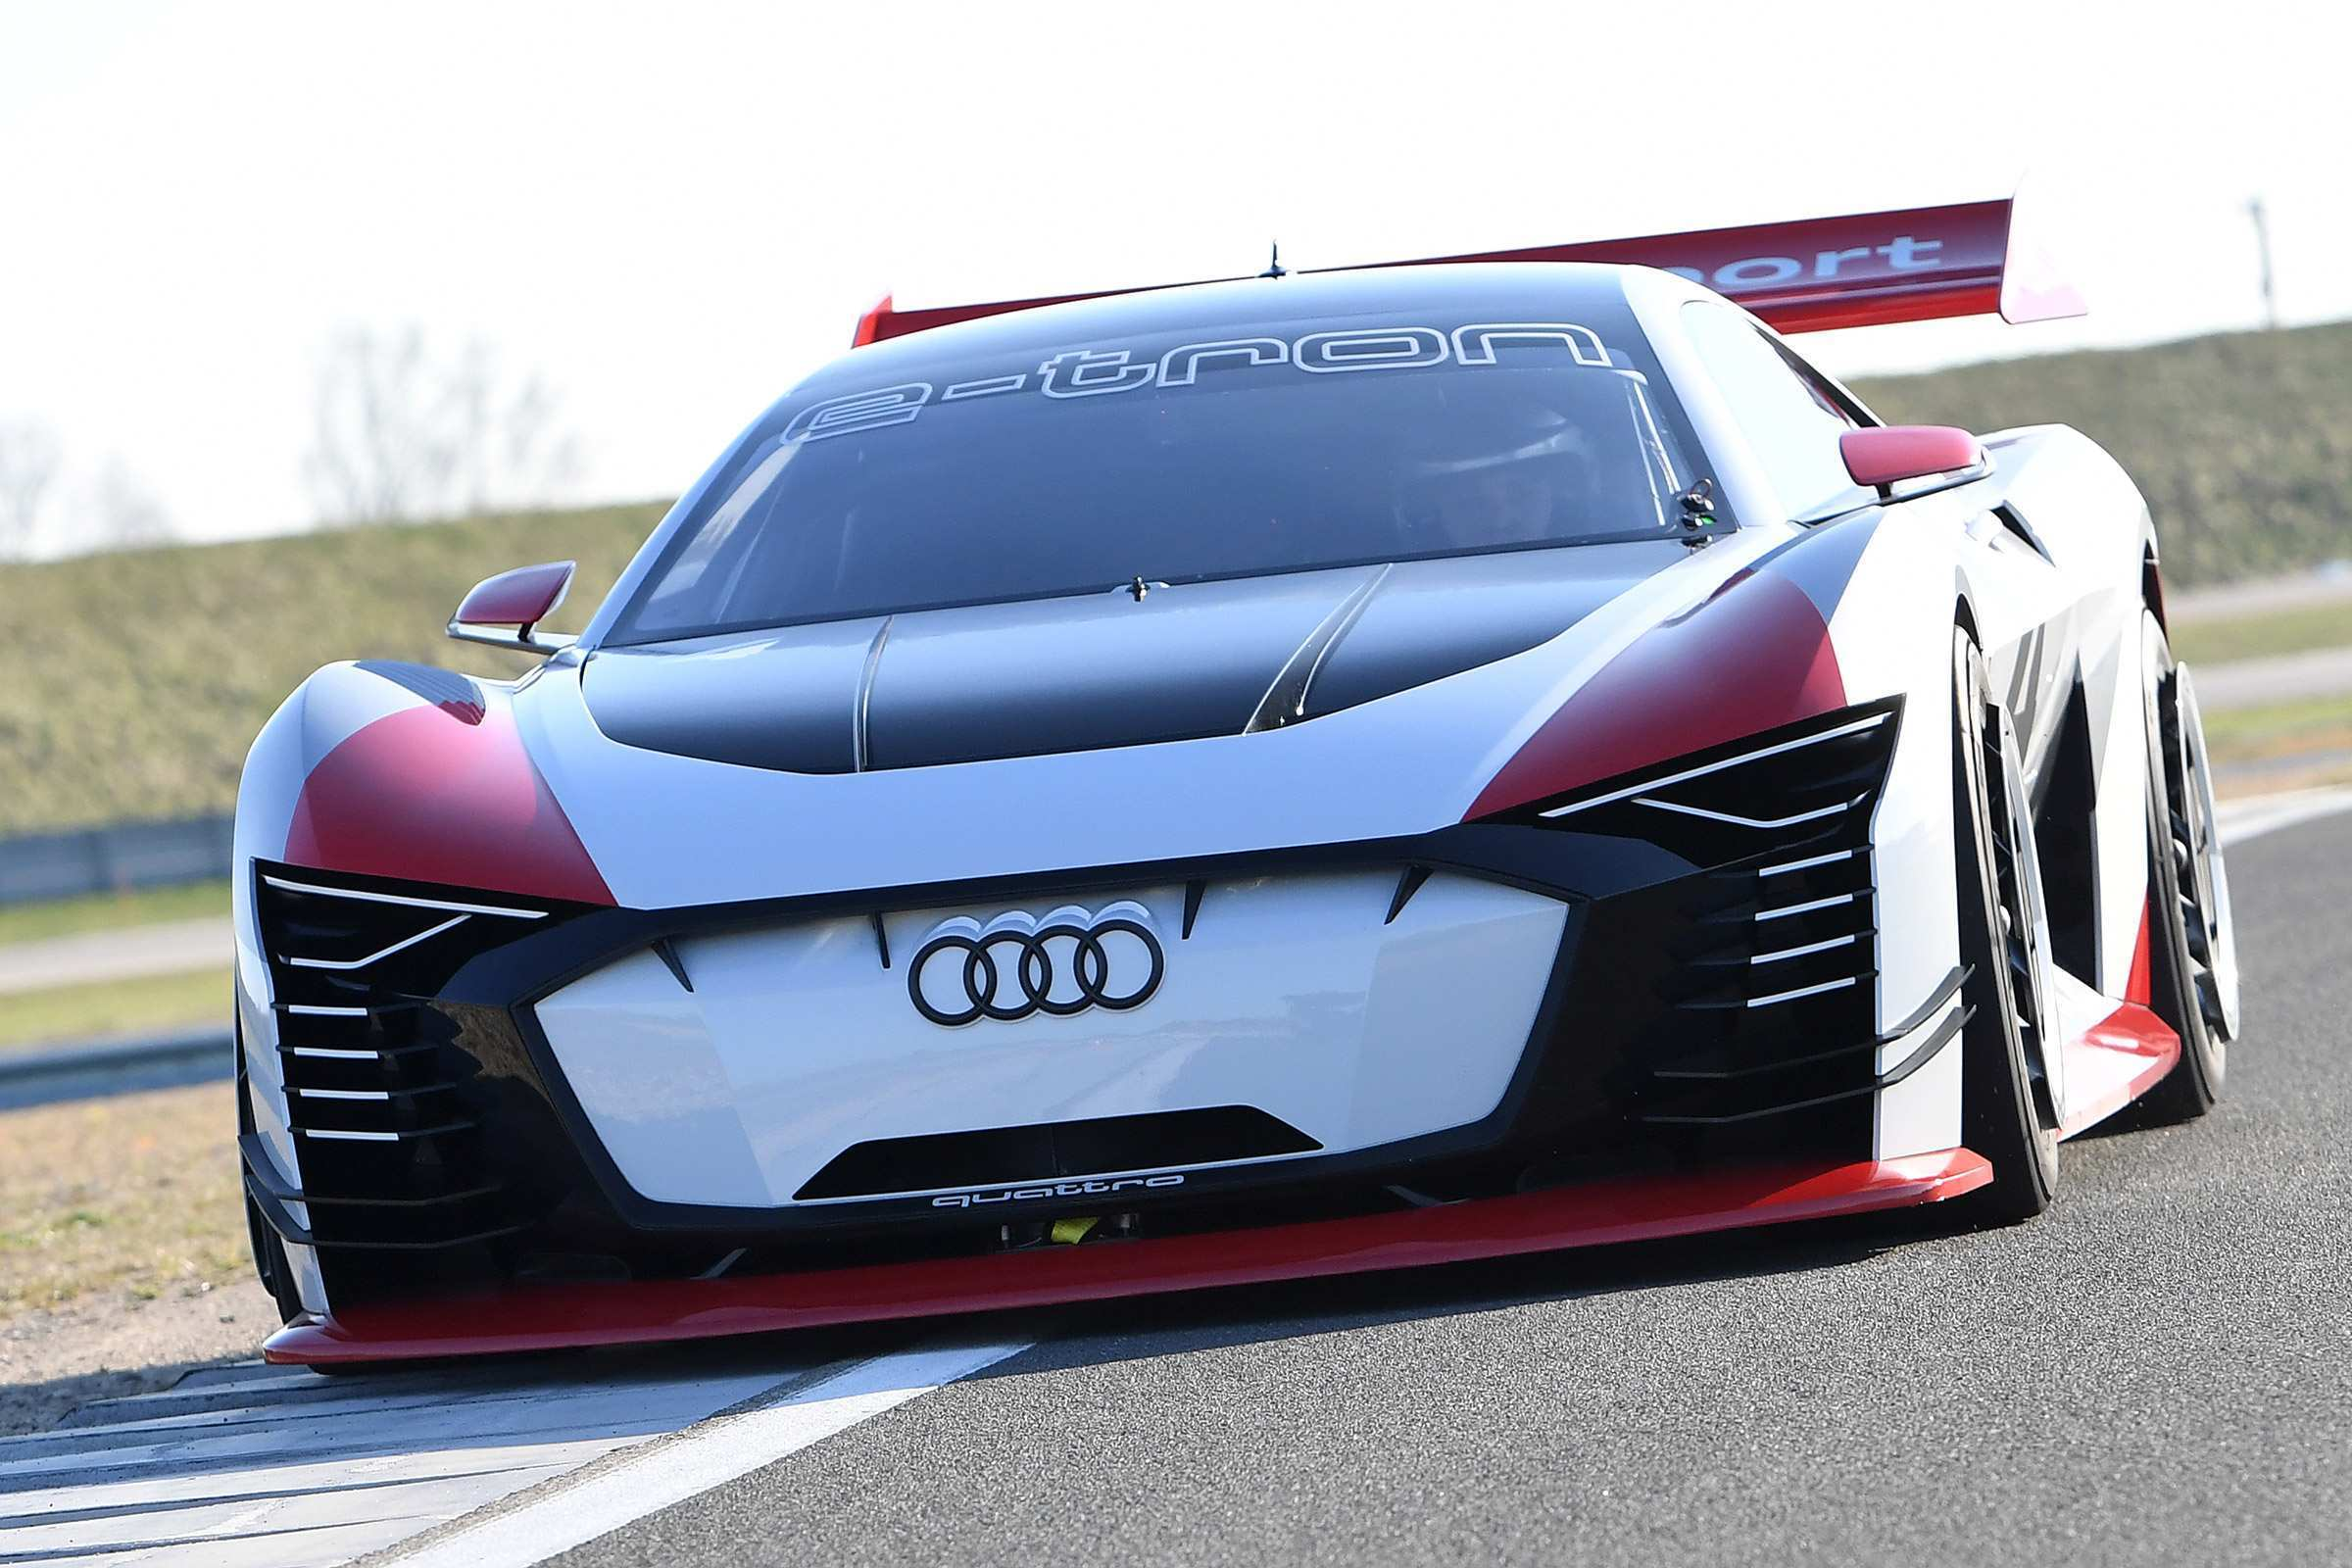 52 The 2020 Audi R8 E Tron Performance